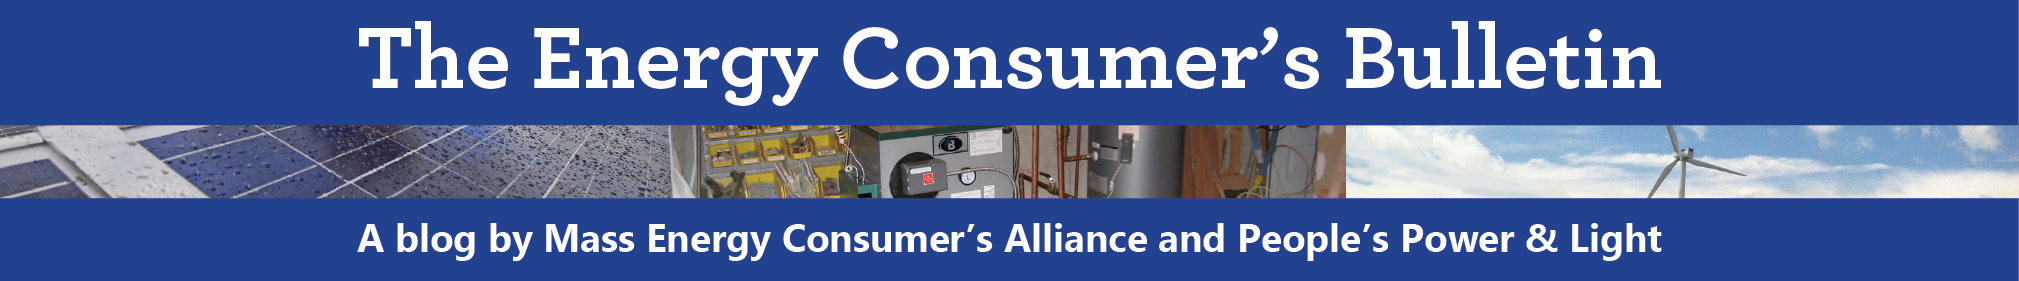 The Energy Consumer's Bulletin